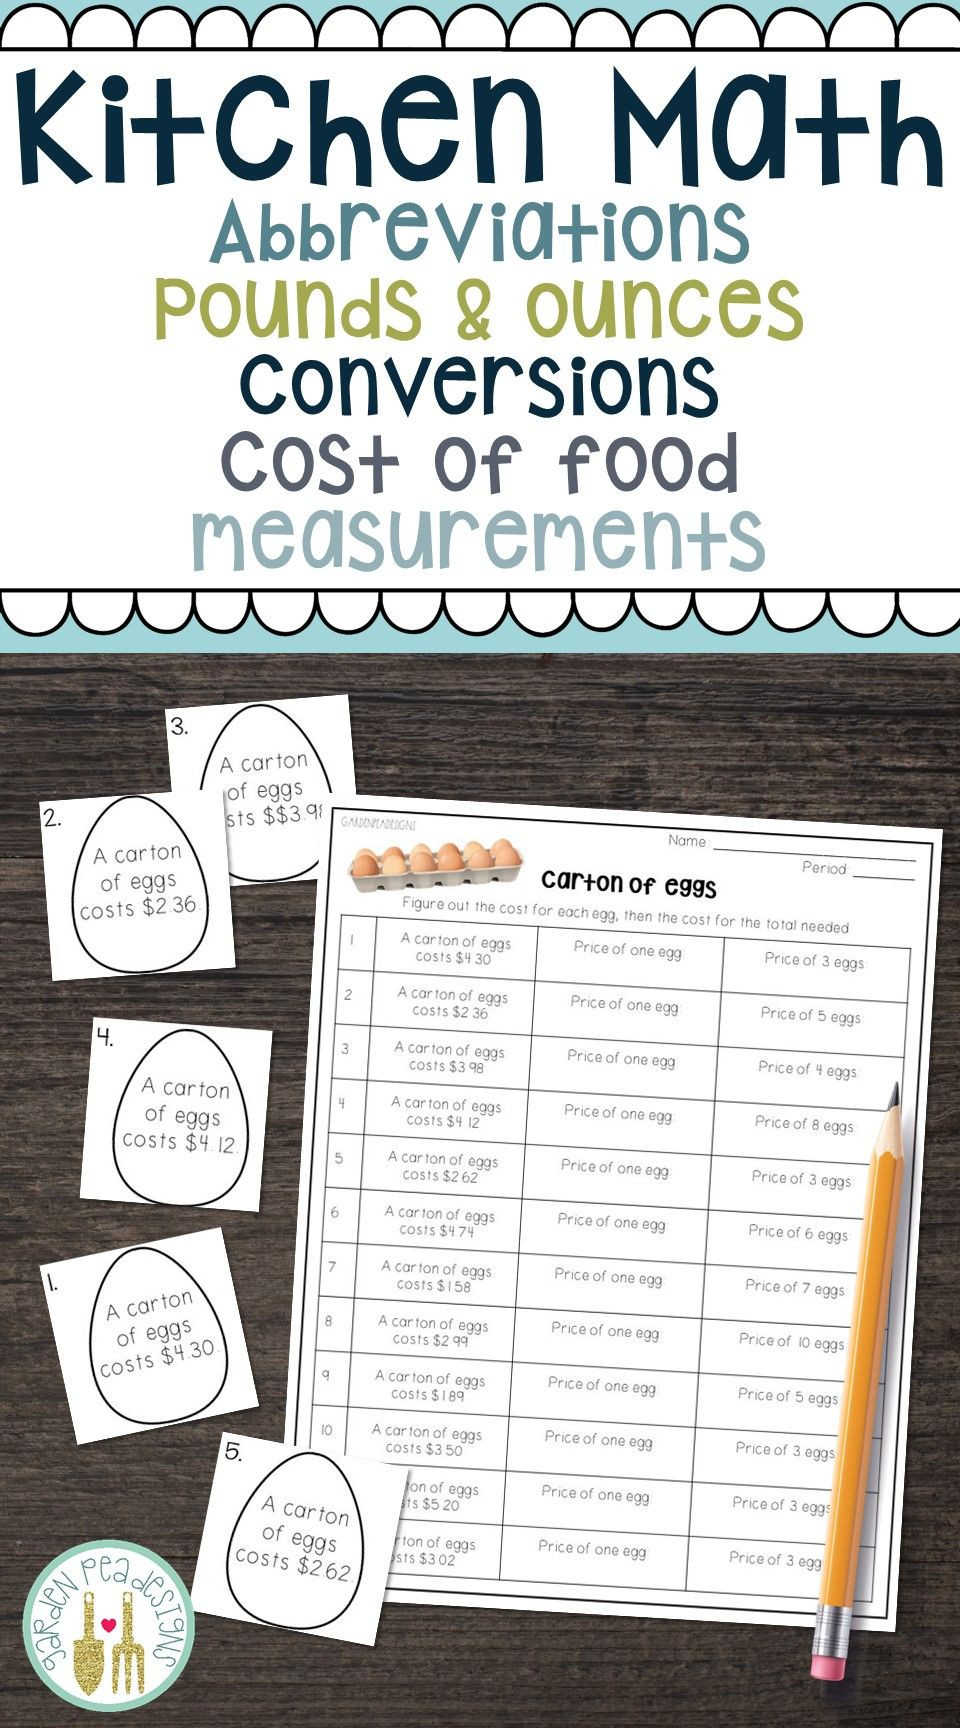 Kitchen Math Measuring Worksheet $5 00 Teach Kitchen Abbreviations How to Convert Pounds to